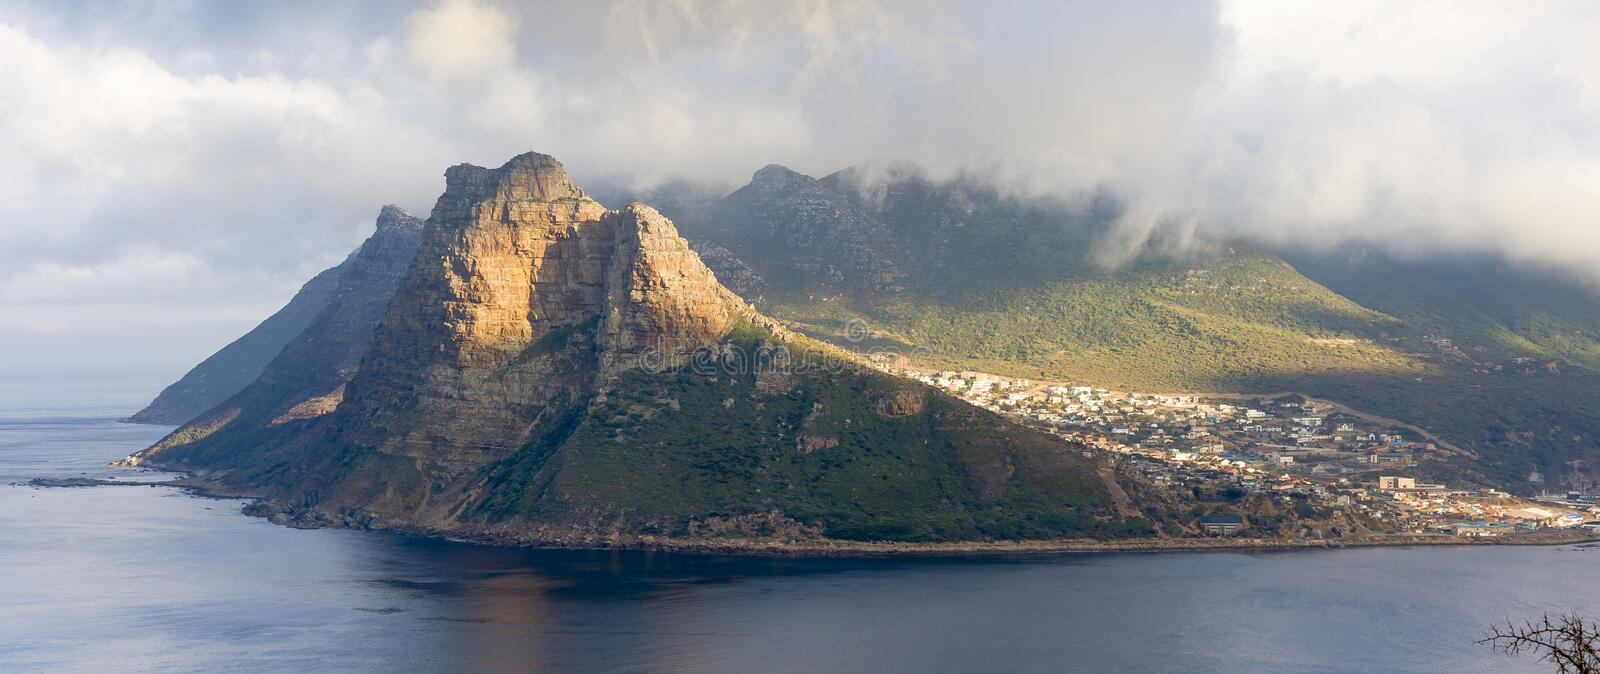 Panoramic view of the Sentinel rock guarding Hout Bay harbor on the Cape Peninsula near to Cape Town in South Africa. The view is stock image